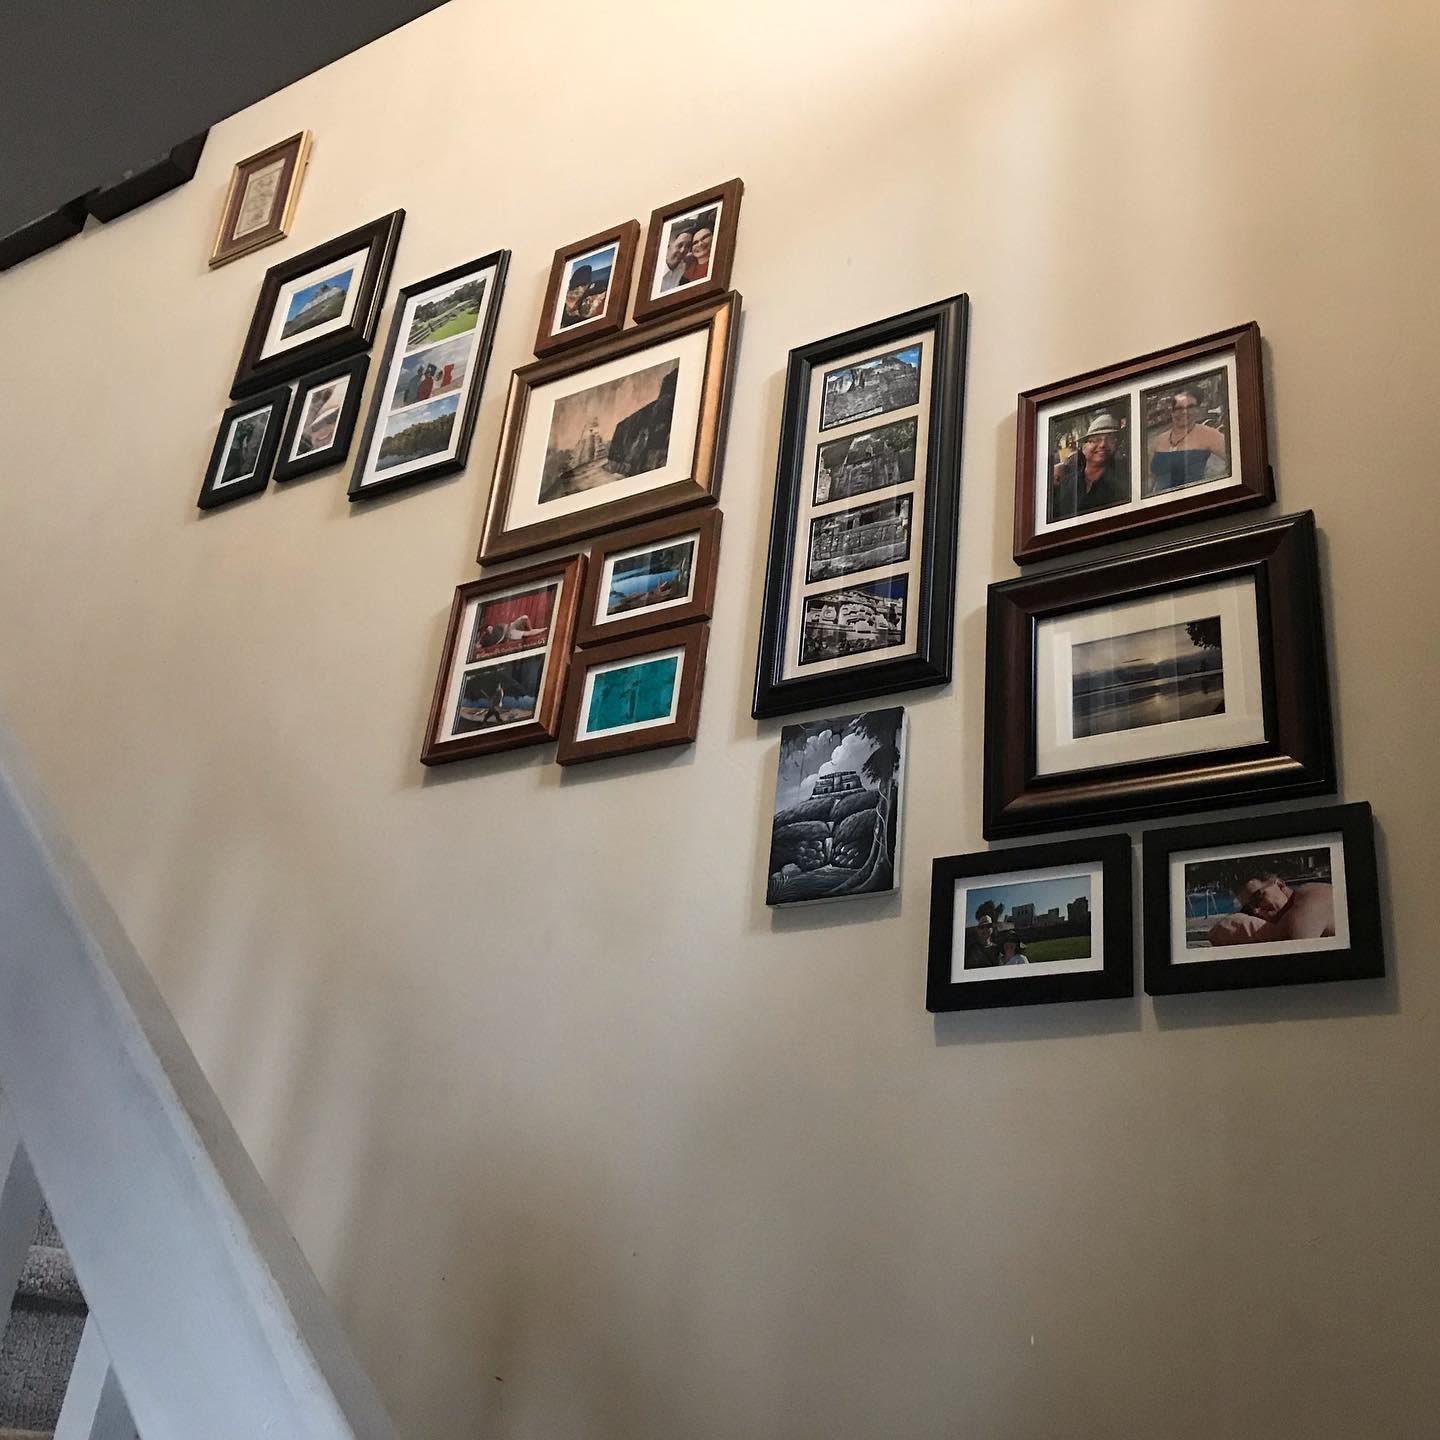 Frame Wall Collage Ideas -lesley.racicot